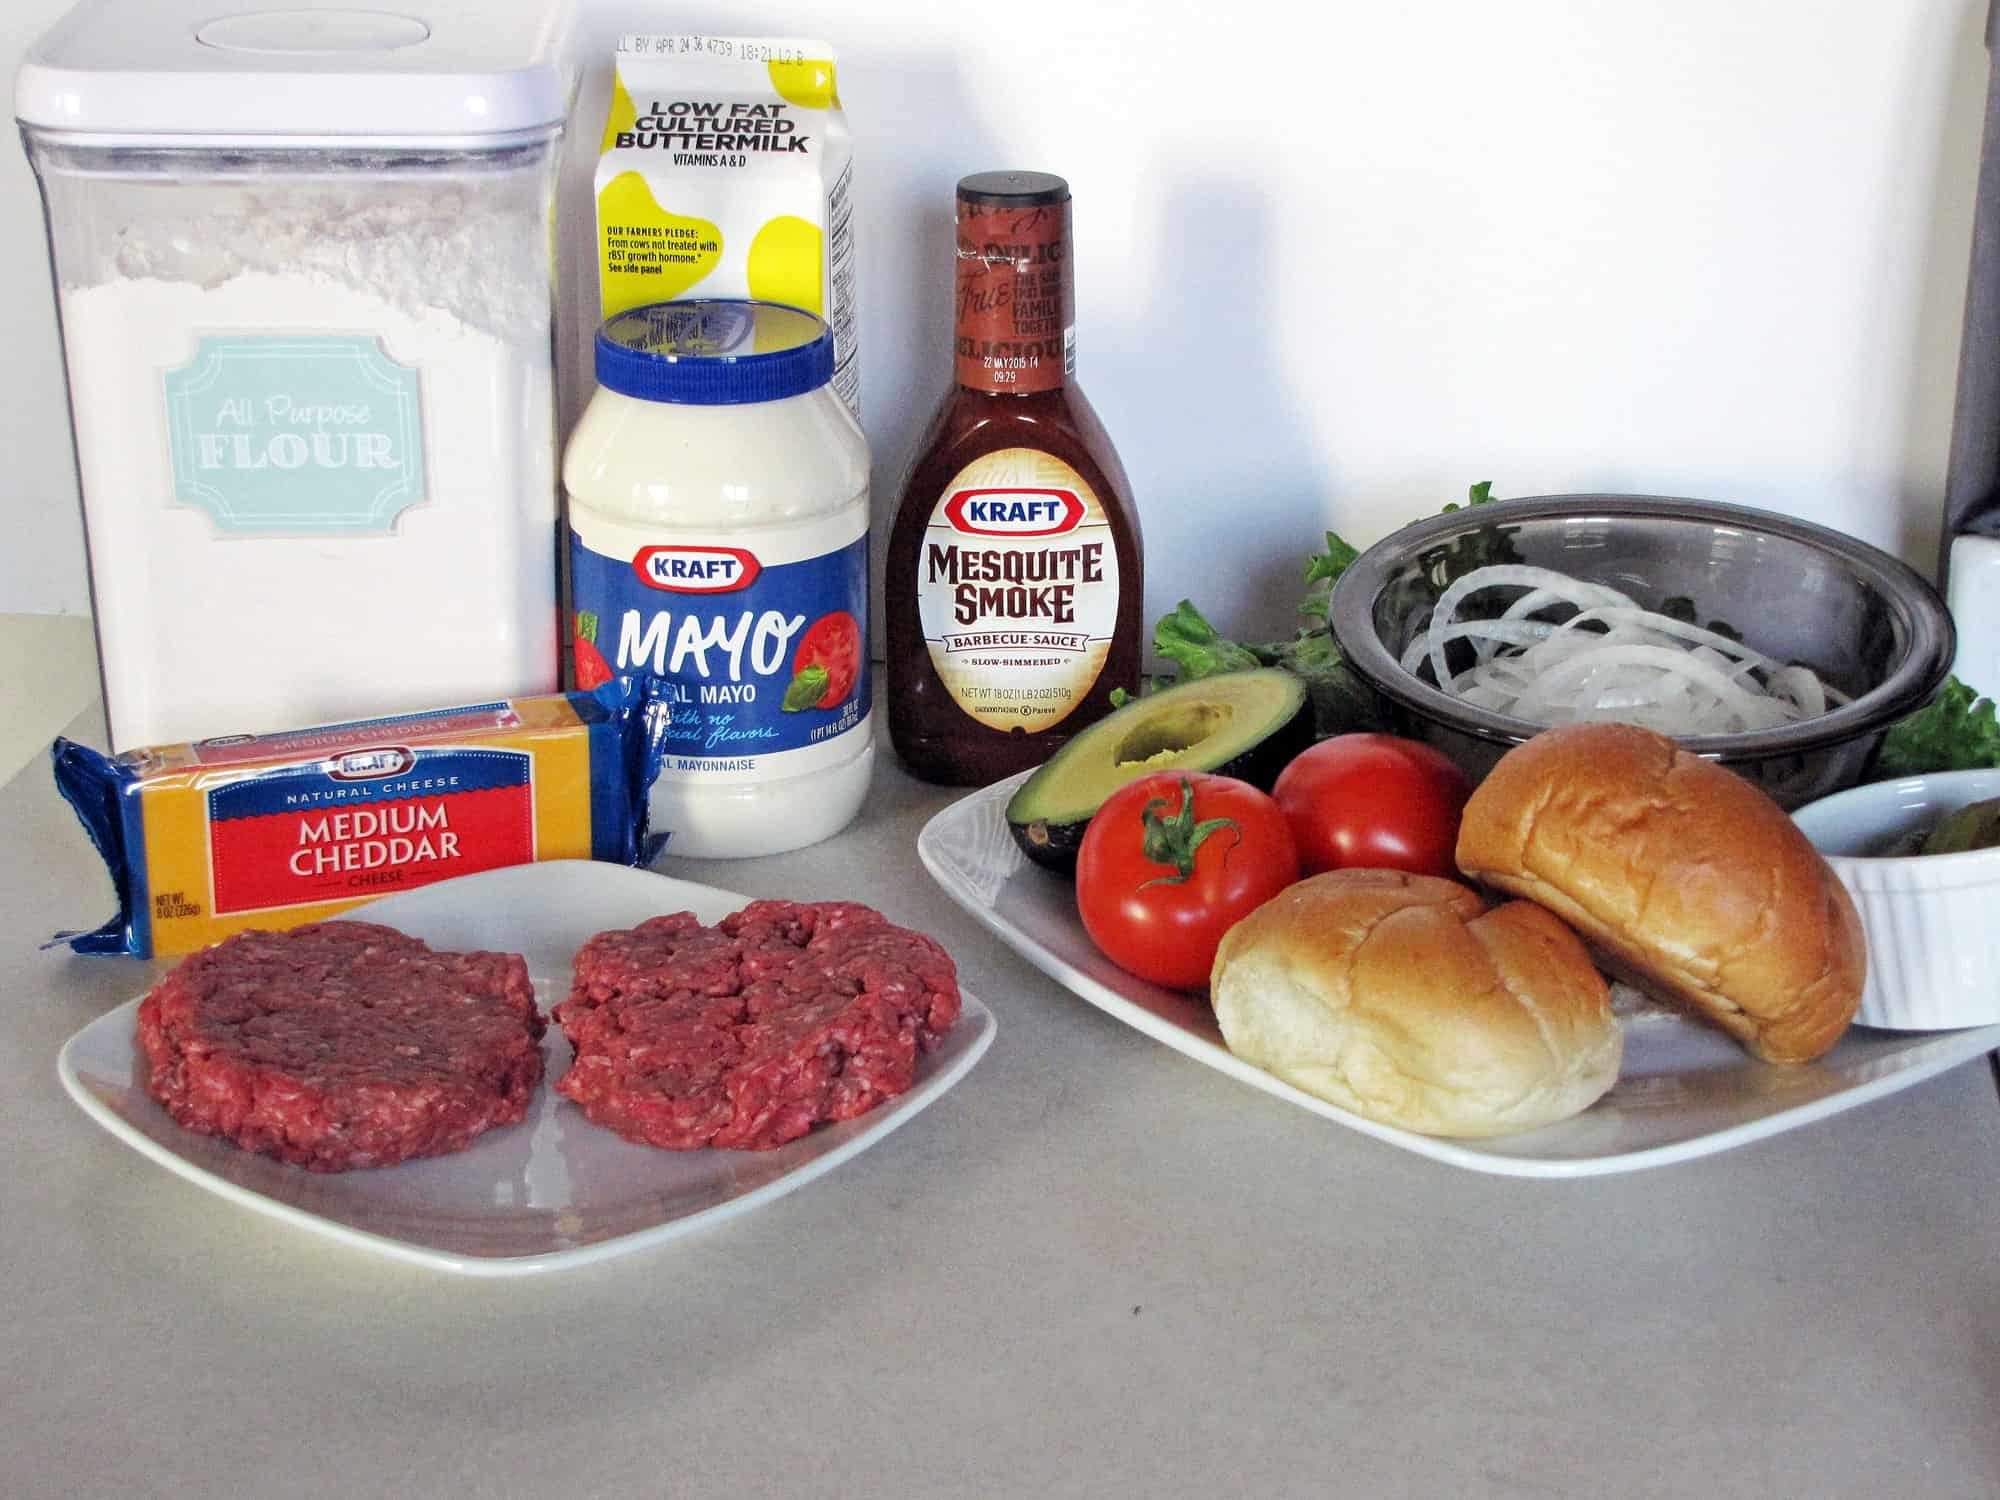 Ingredients for crispy onion string BBQ cheeseburgers on white plates-Beef, onion, tomato, avocado, buns, pickles, BBQ sauce, cheddar, mayo, buttermilk, and all purpose flour.